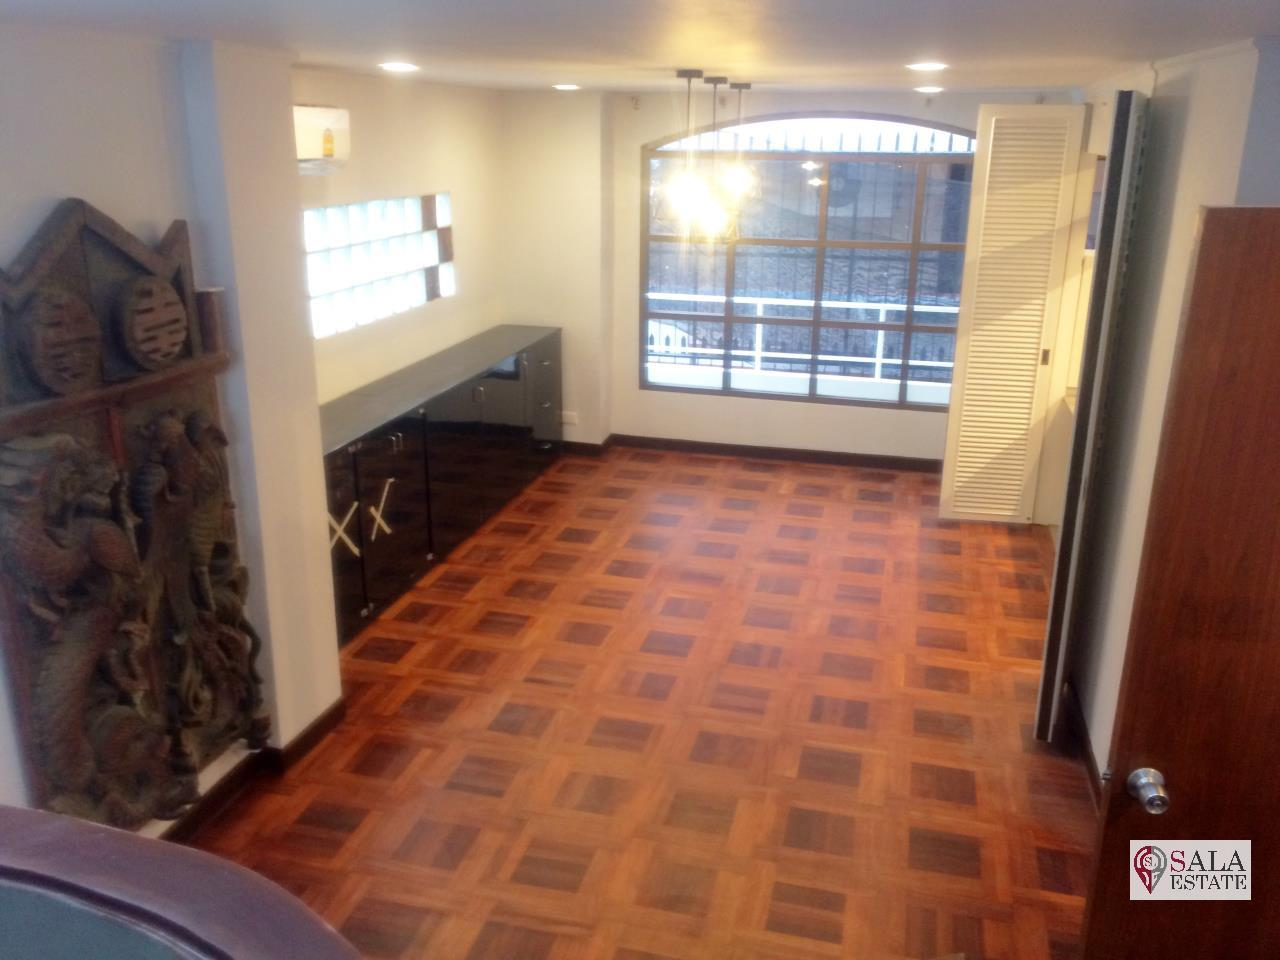 SALA ESTATE Agency's ( FOR RENT/SELL ) TOWNHOUSE IN SUKHUMVIT SOI 31 - 4 FLOORS, 3 BEDROOMS 5 BATHROOMS, FULLY FURNISHED 4